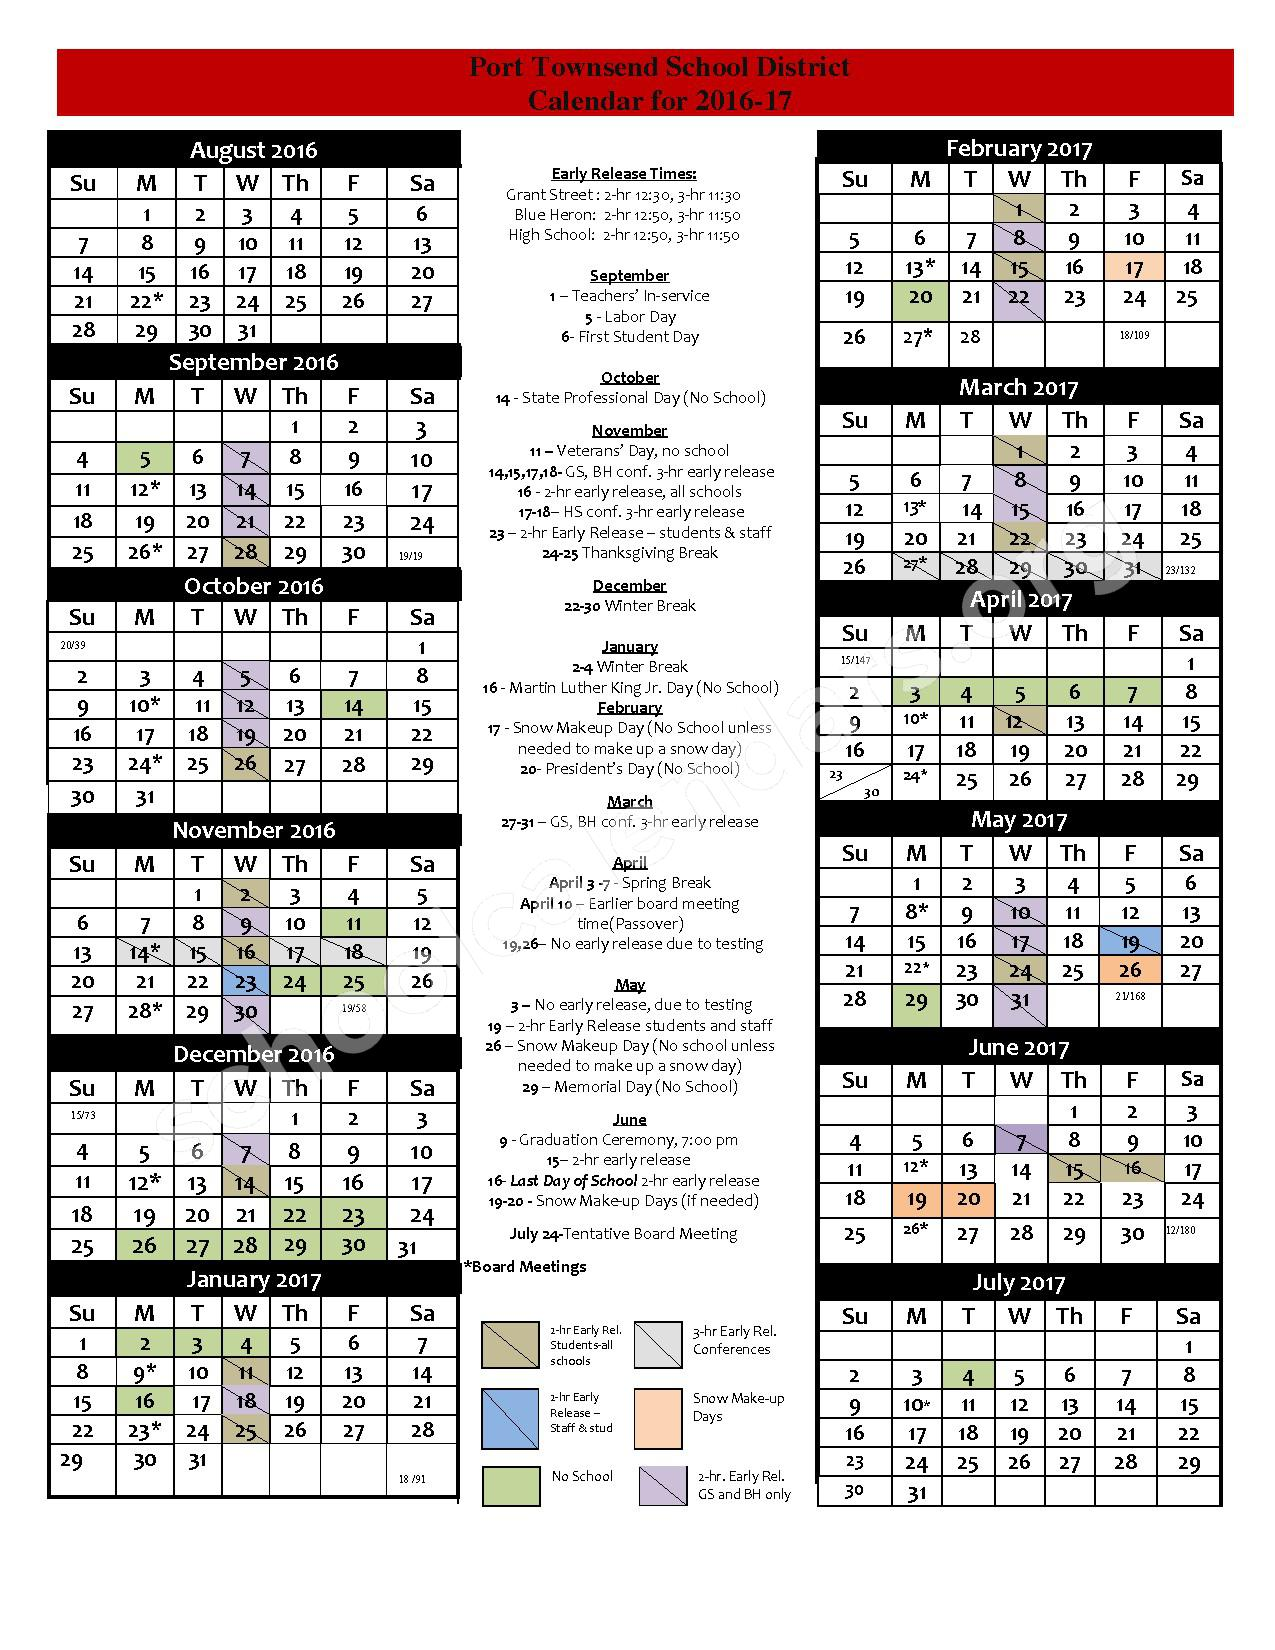 School District Calendar – Port Townsend School District – page 1